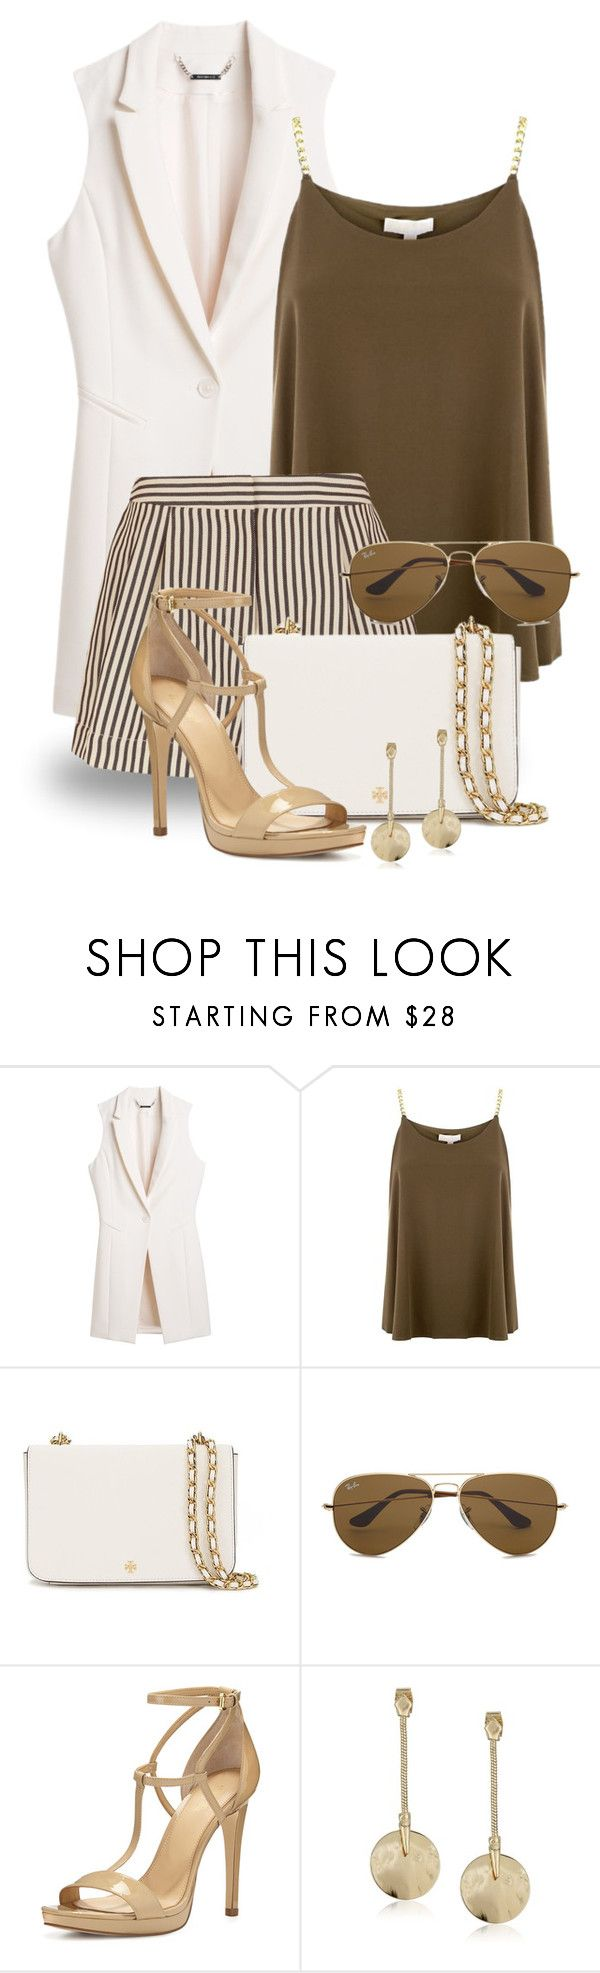 """""""Shorts + Vest 1347"""" by boxthoughts ❤ liked on Polyvore featuring White House Black Market, MICHAEL Michael Kors, 3.1 Phillip Lim, Tory Burch, Ray-Ban and Robert Lee Morris"""